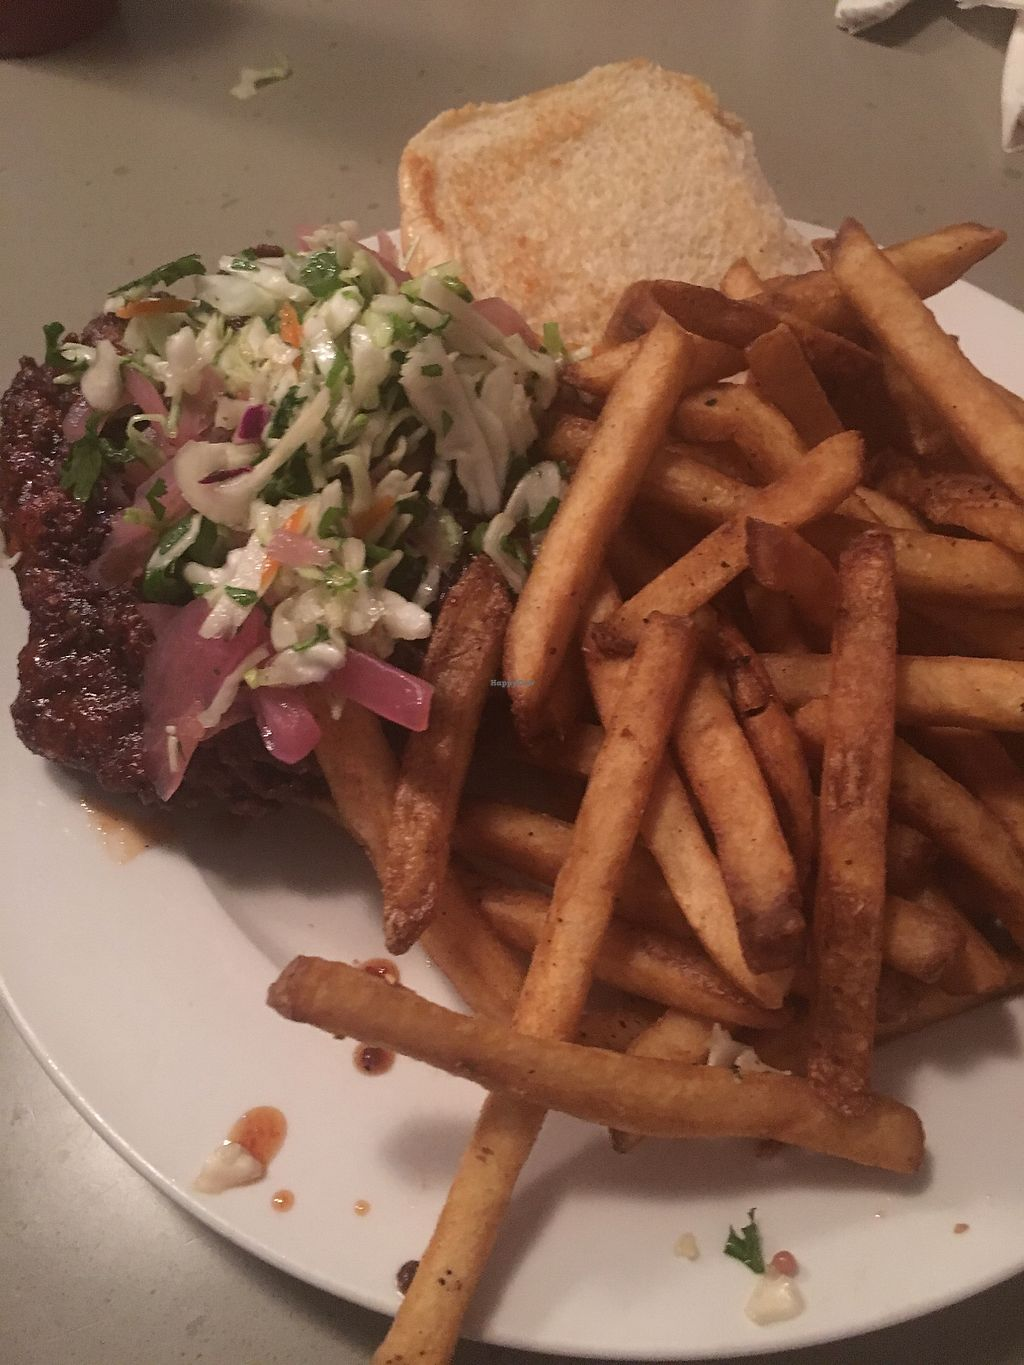 """Photo of Cafe 821  by <a href=""""/members/profile/mem2024"""">mem2024</a> <br/>Vegan Fried Chicken Sandwich - SO GOOD <br/> January 28, 2018  - <a href='/contact/abuse/image/20708/351844'>Report</a>"""